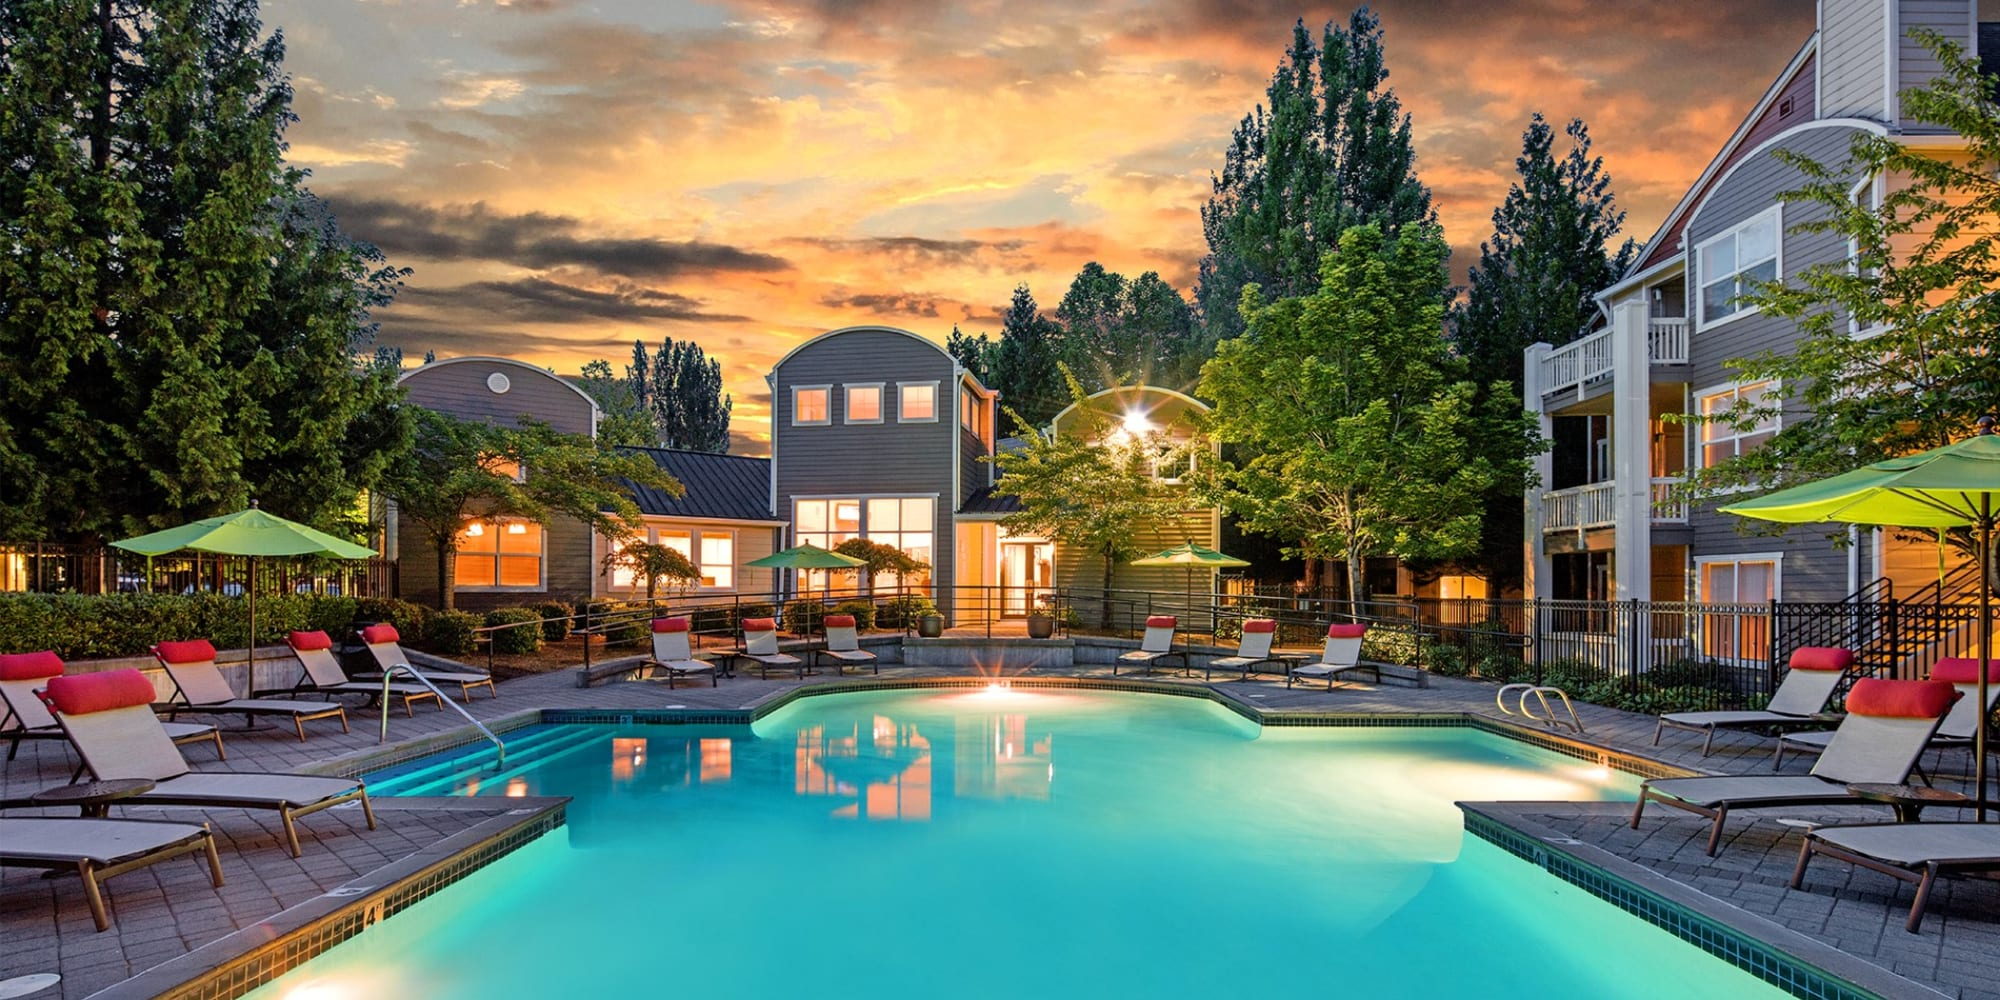 Apartments at Center Pointe Apartment Homes in Beaverton, Oregon